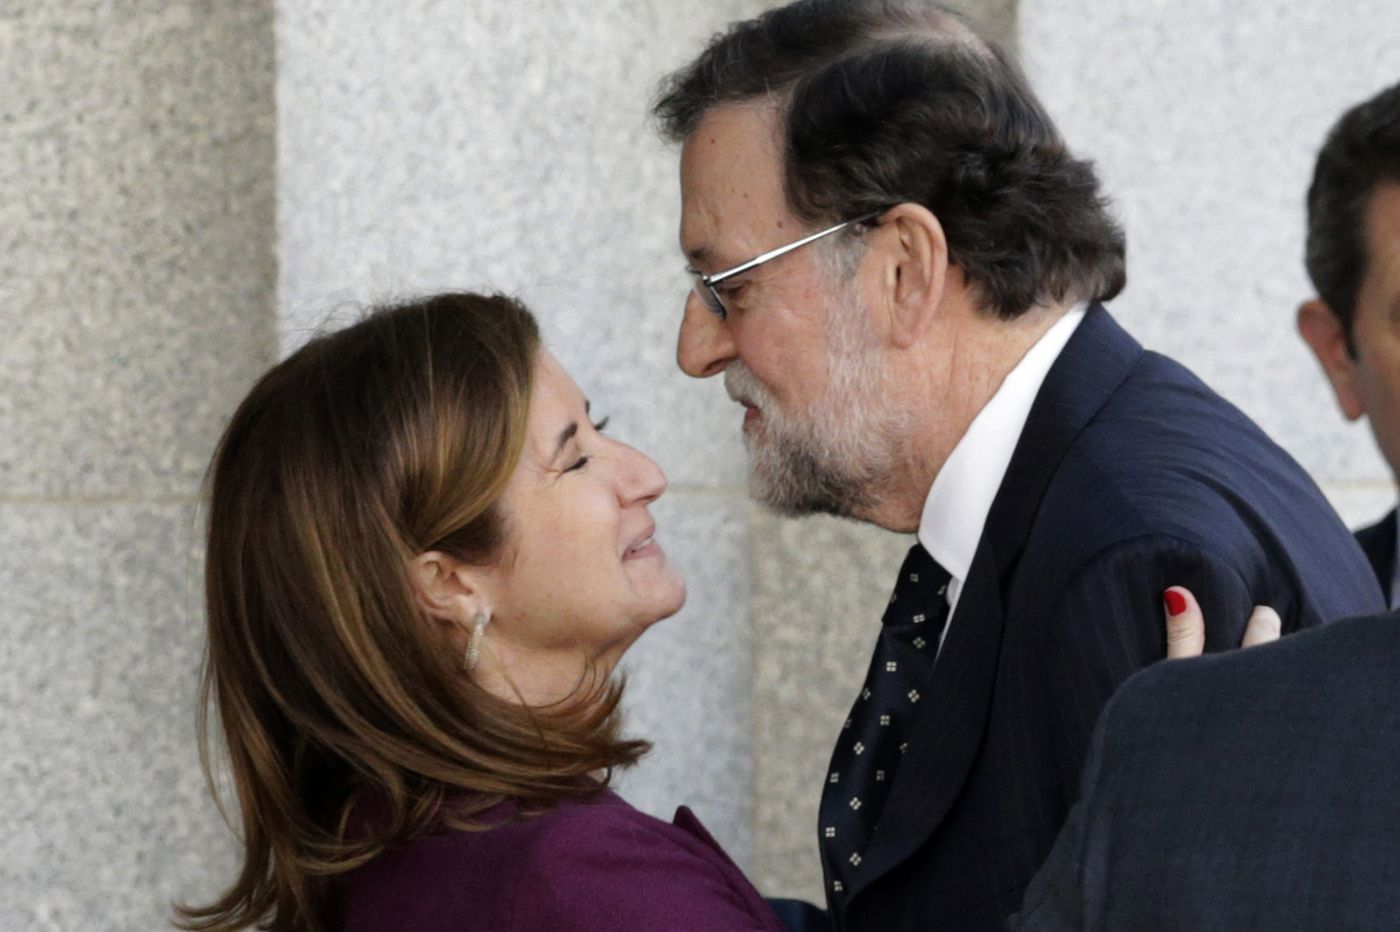 Ex-Spain PM Rajoy defends national unity at separatist trial